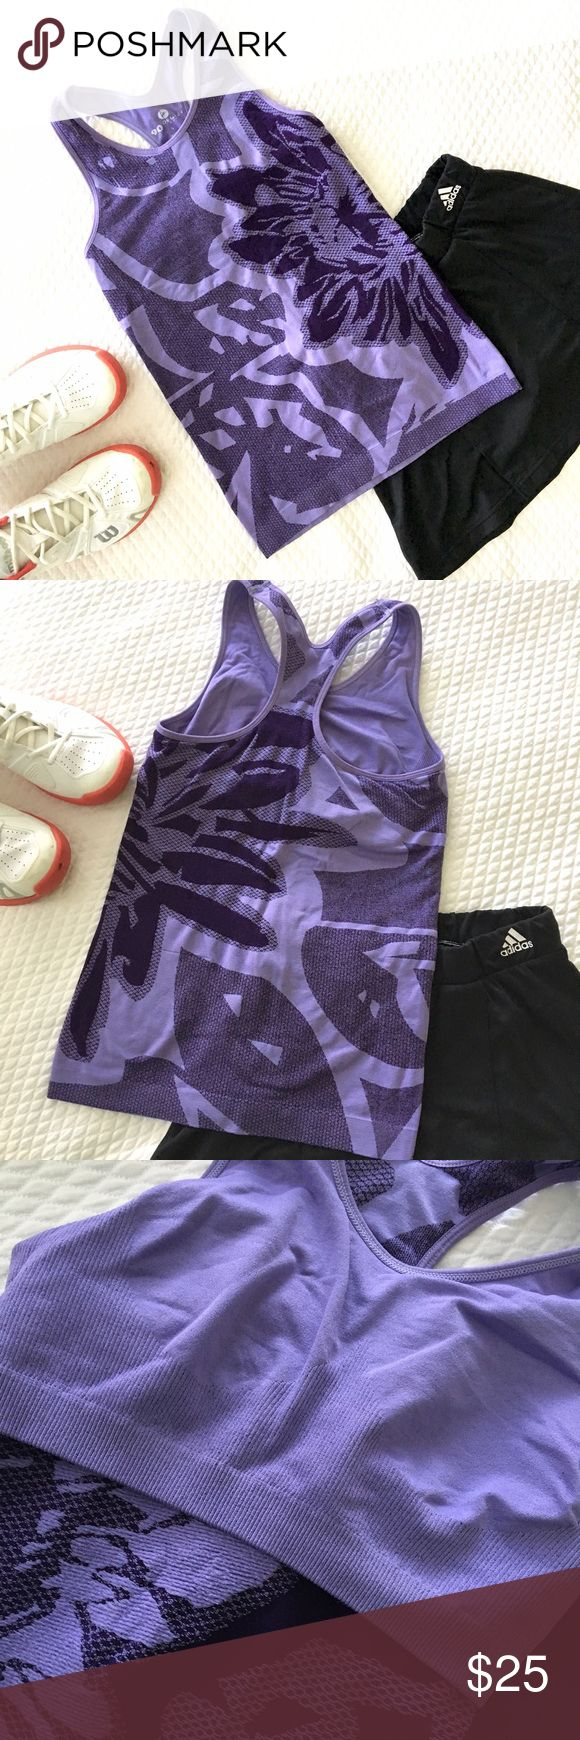 Sports top with Built-in Bra from 90 Degrees Gorgeous, stretchy purple sports top with a built in bra (photo shows top turned inside out so you can see the bra).  Entire top made of elastic material so bra won't eat into your skin!  Worn once (and laundered) so great condition. Size Small. 90 Degrees Tops